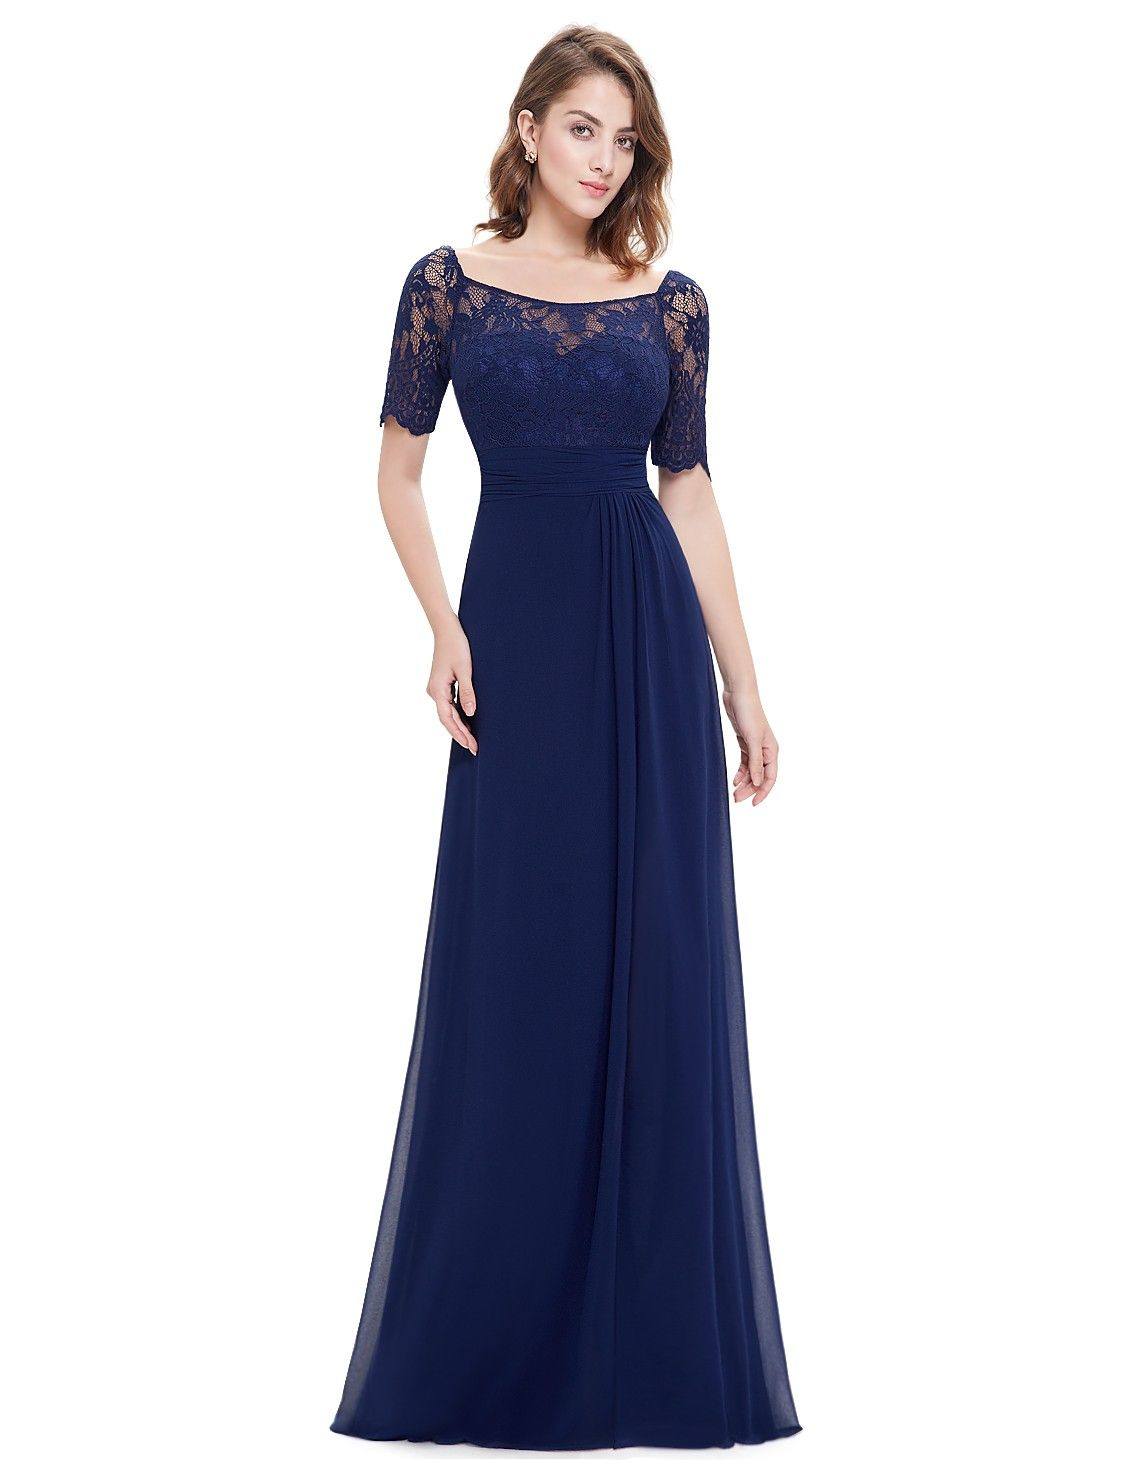 Half Sleeve Empire Waist Evening Dress with Lace Bodice | Lace ...